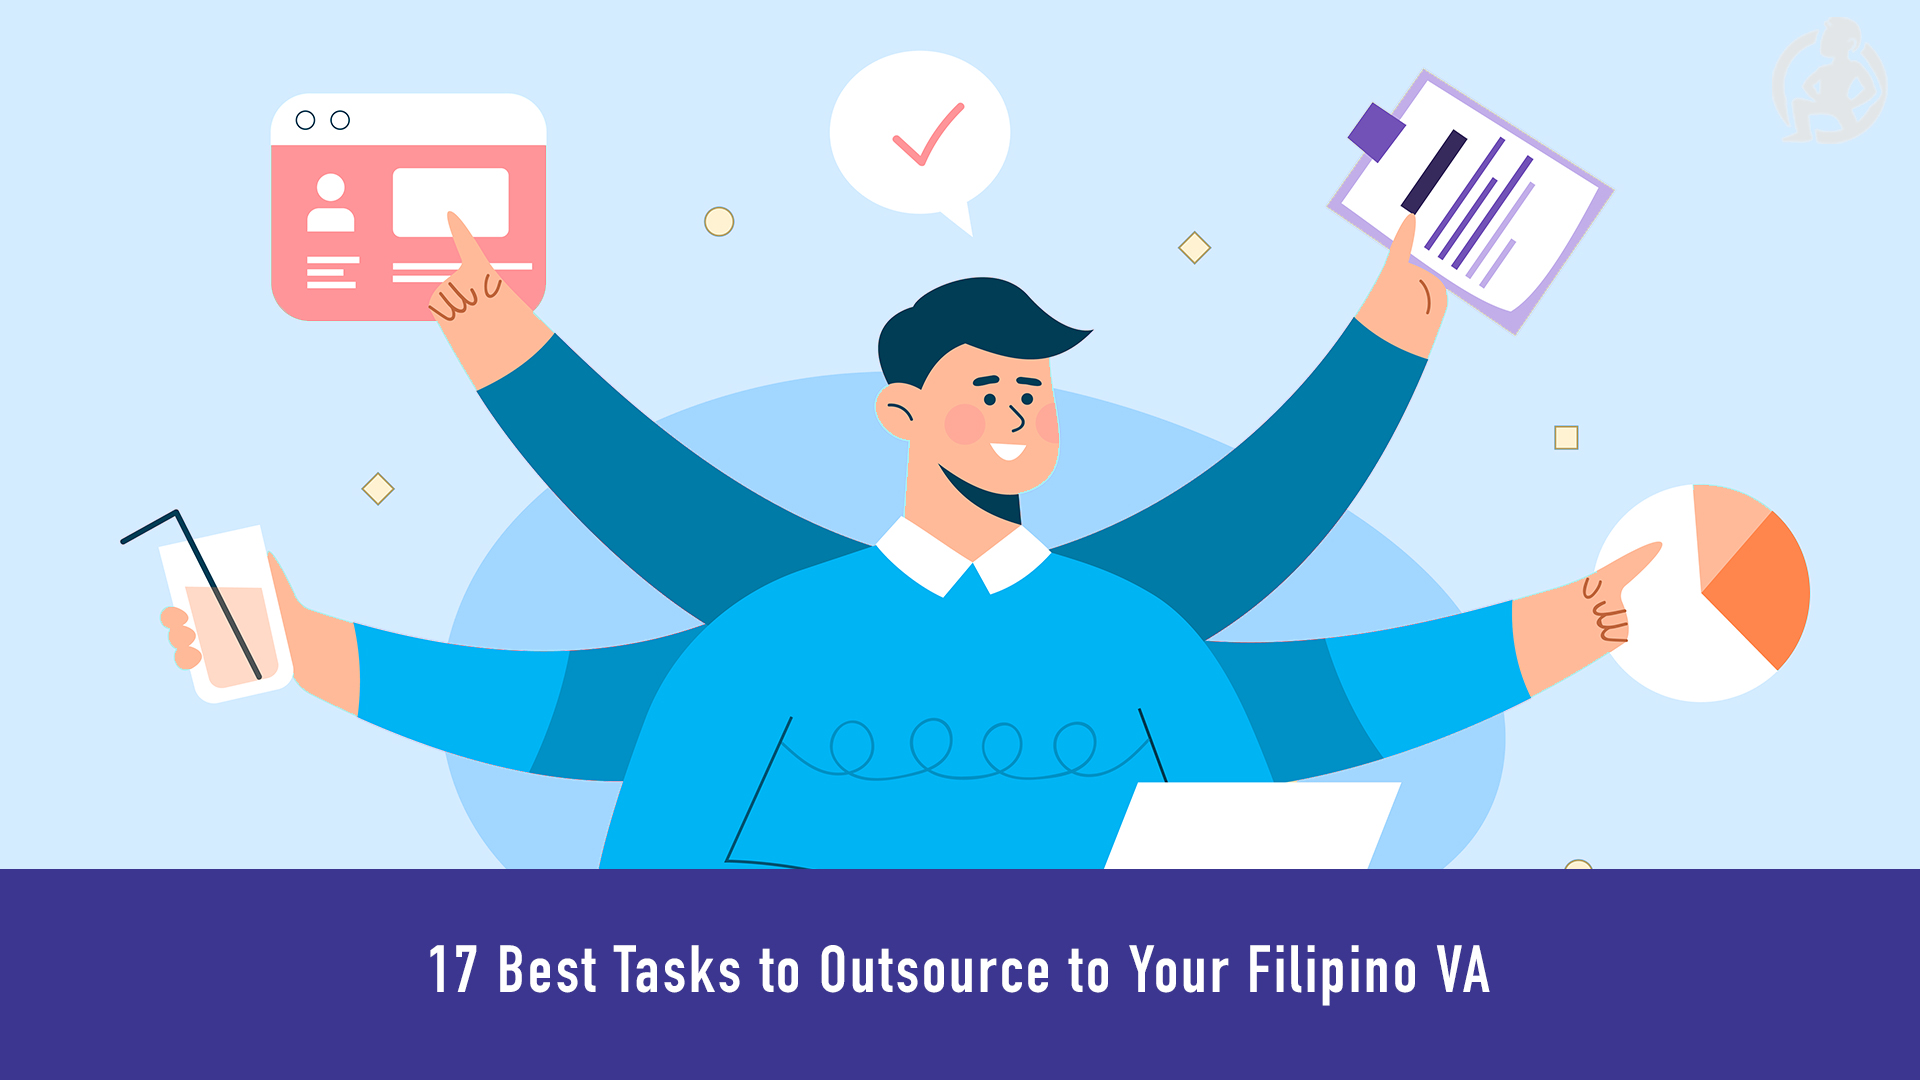 17 Best Tasks to Outsource to Your Filipino VA